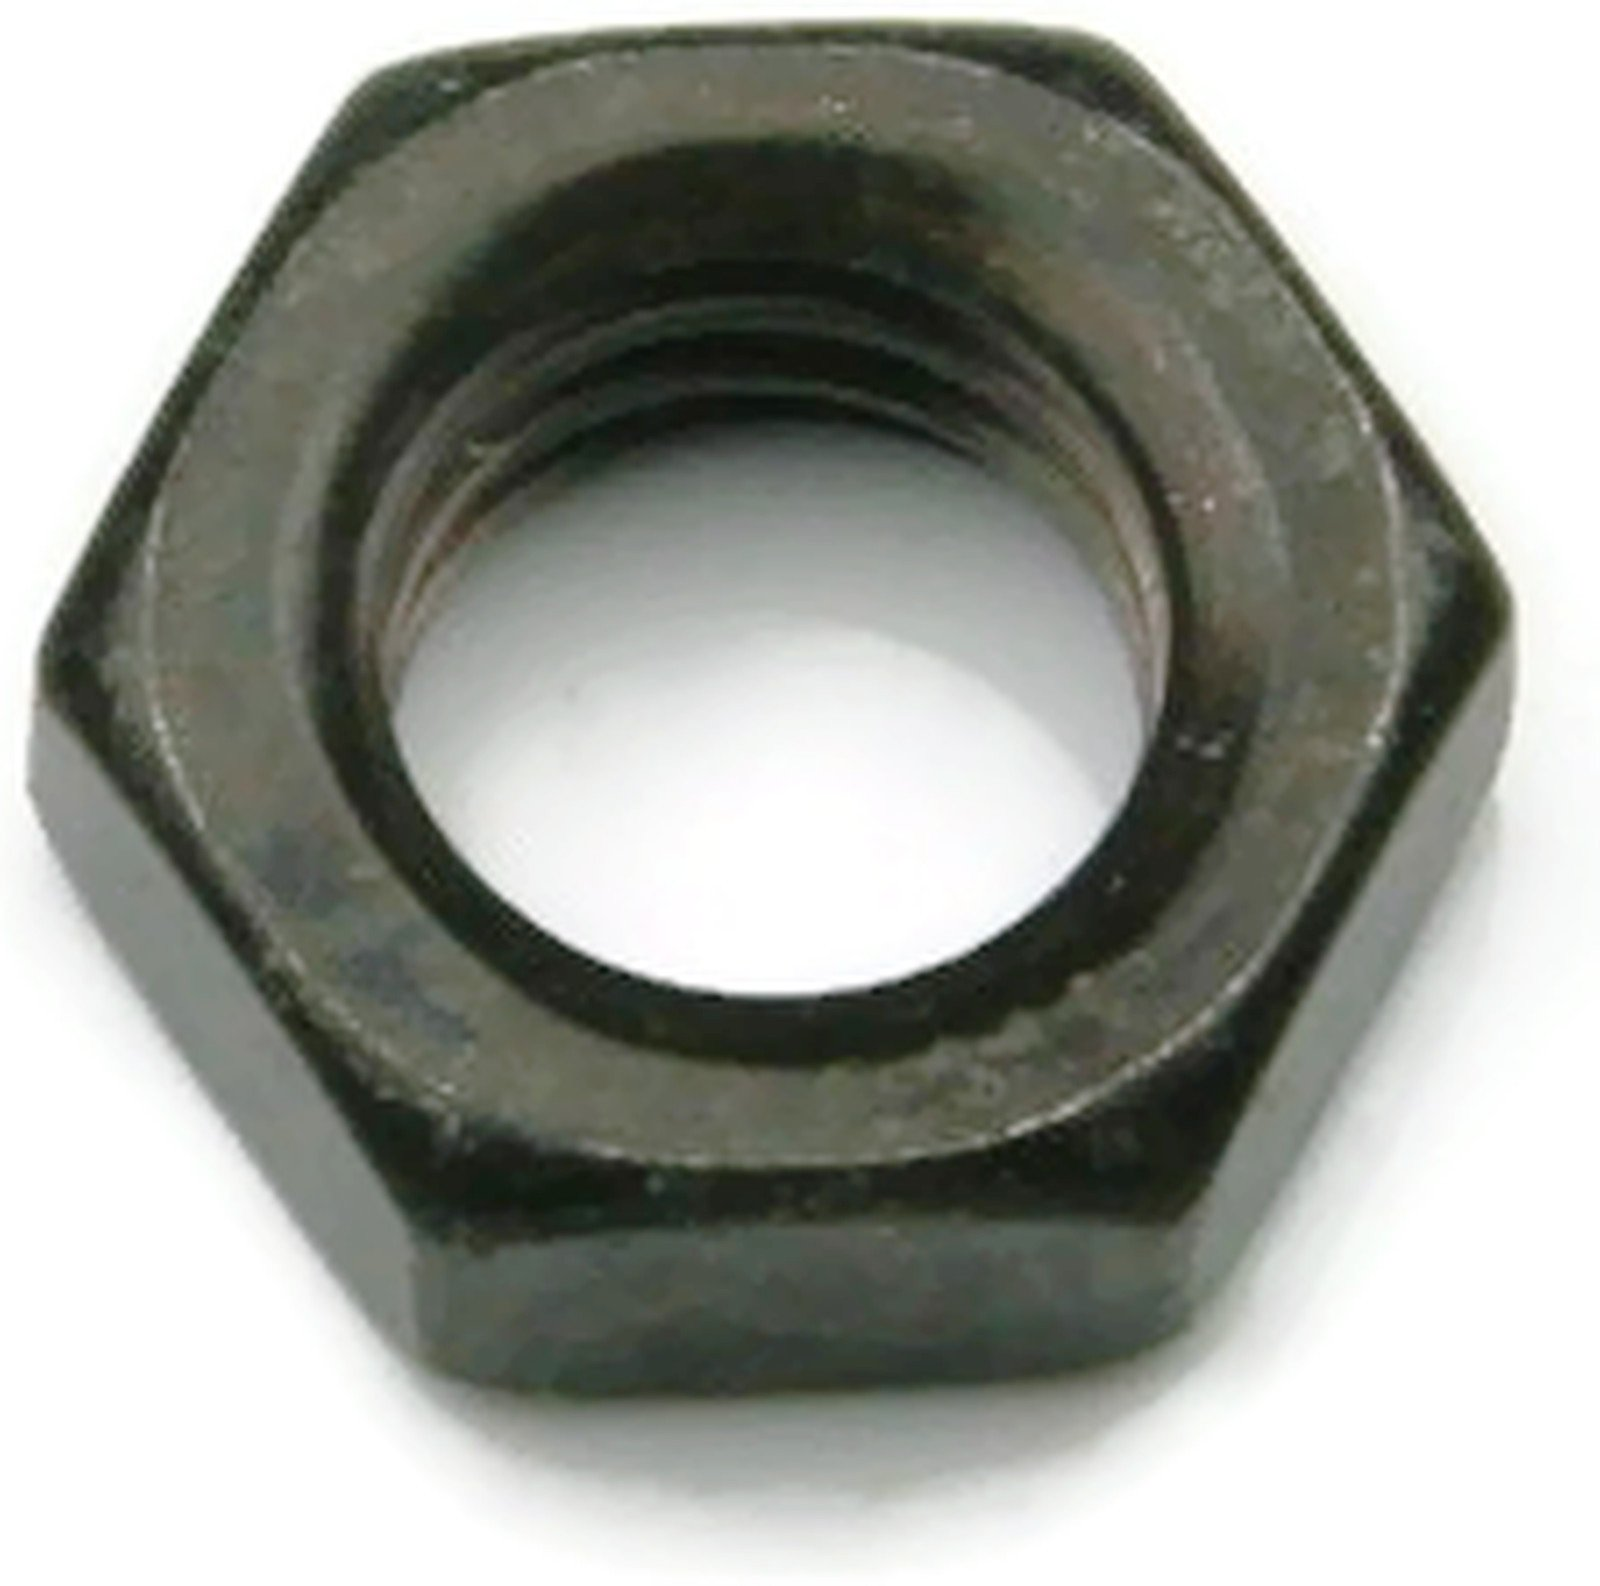 18-8 Stainless Steel Black Oxide Hex Jam Nuts - 3/8-16 (9/16 Flats x 7/32 Thick) - Qty 25